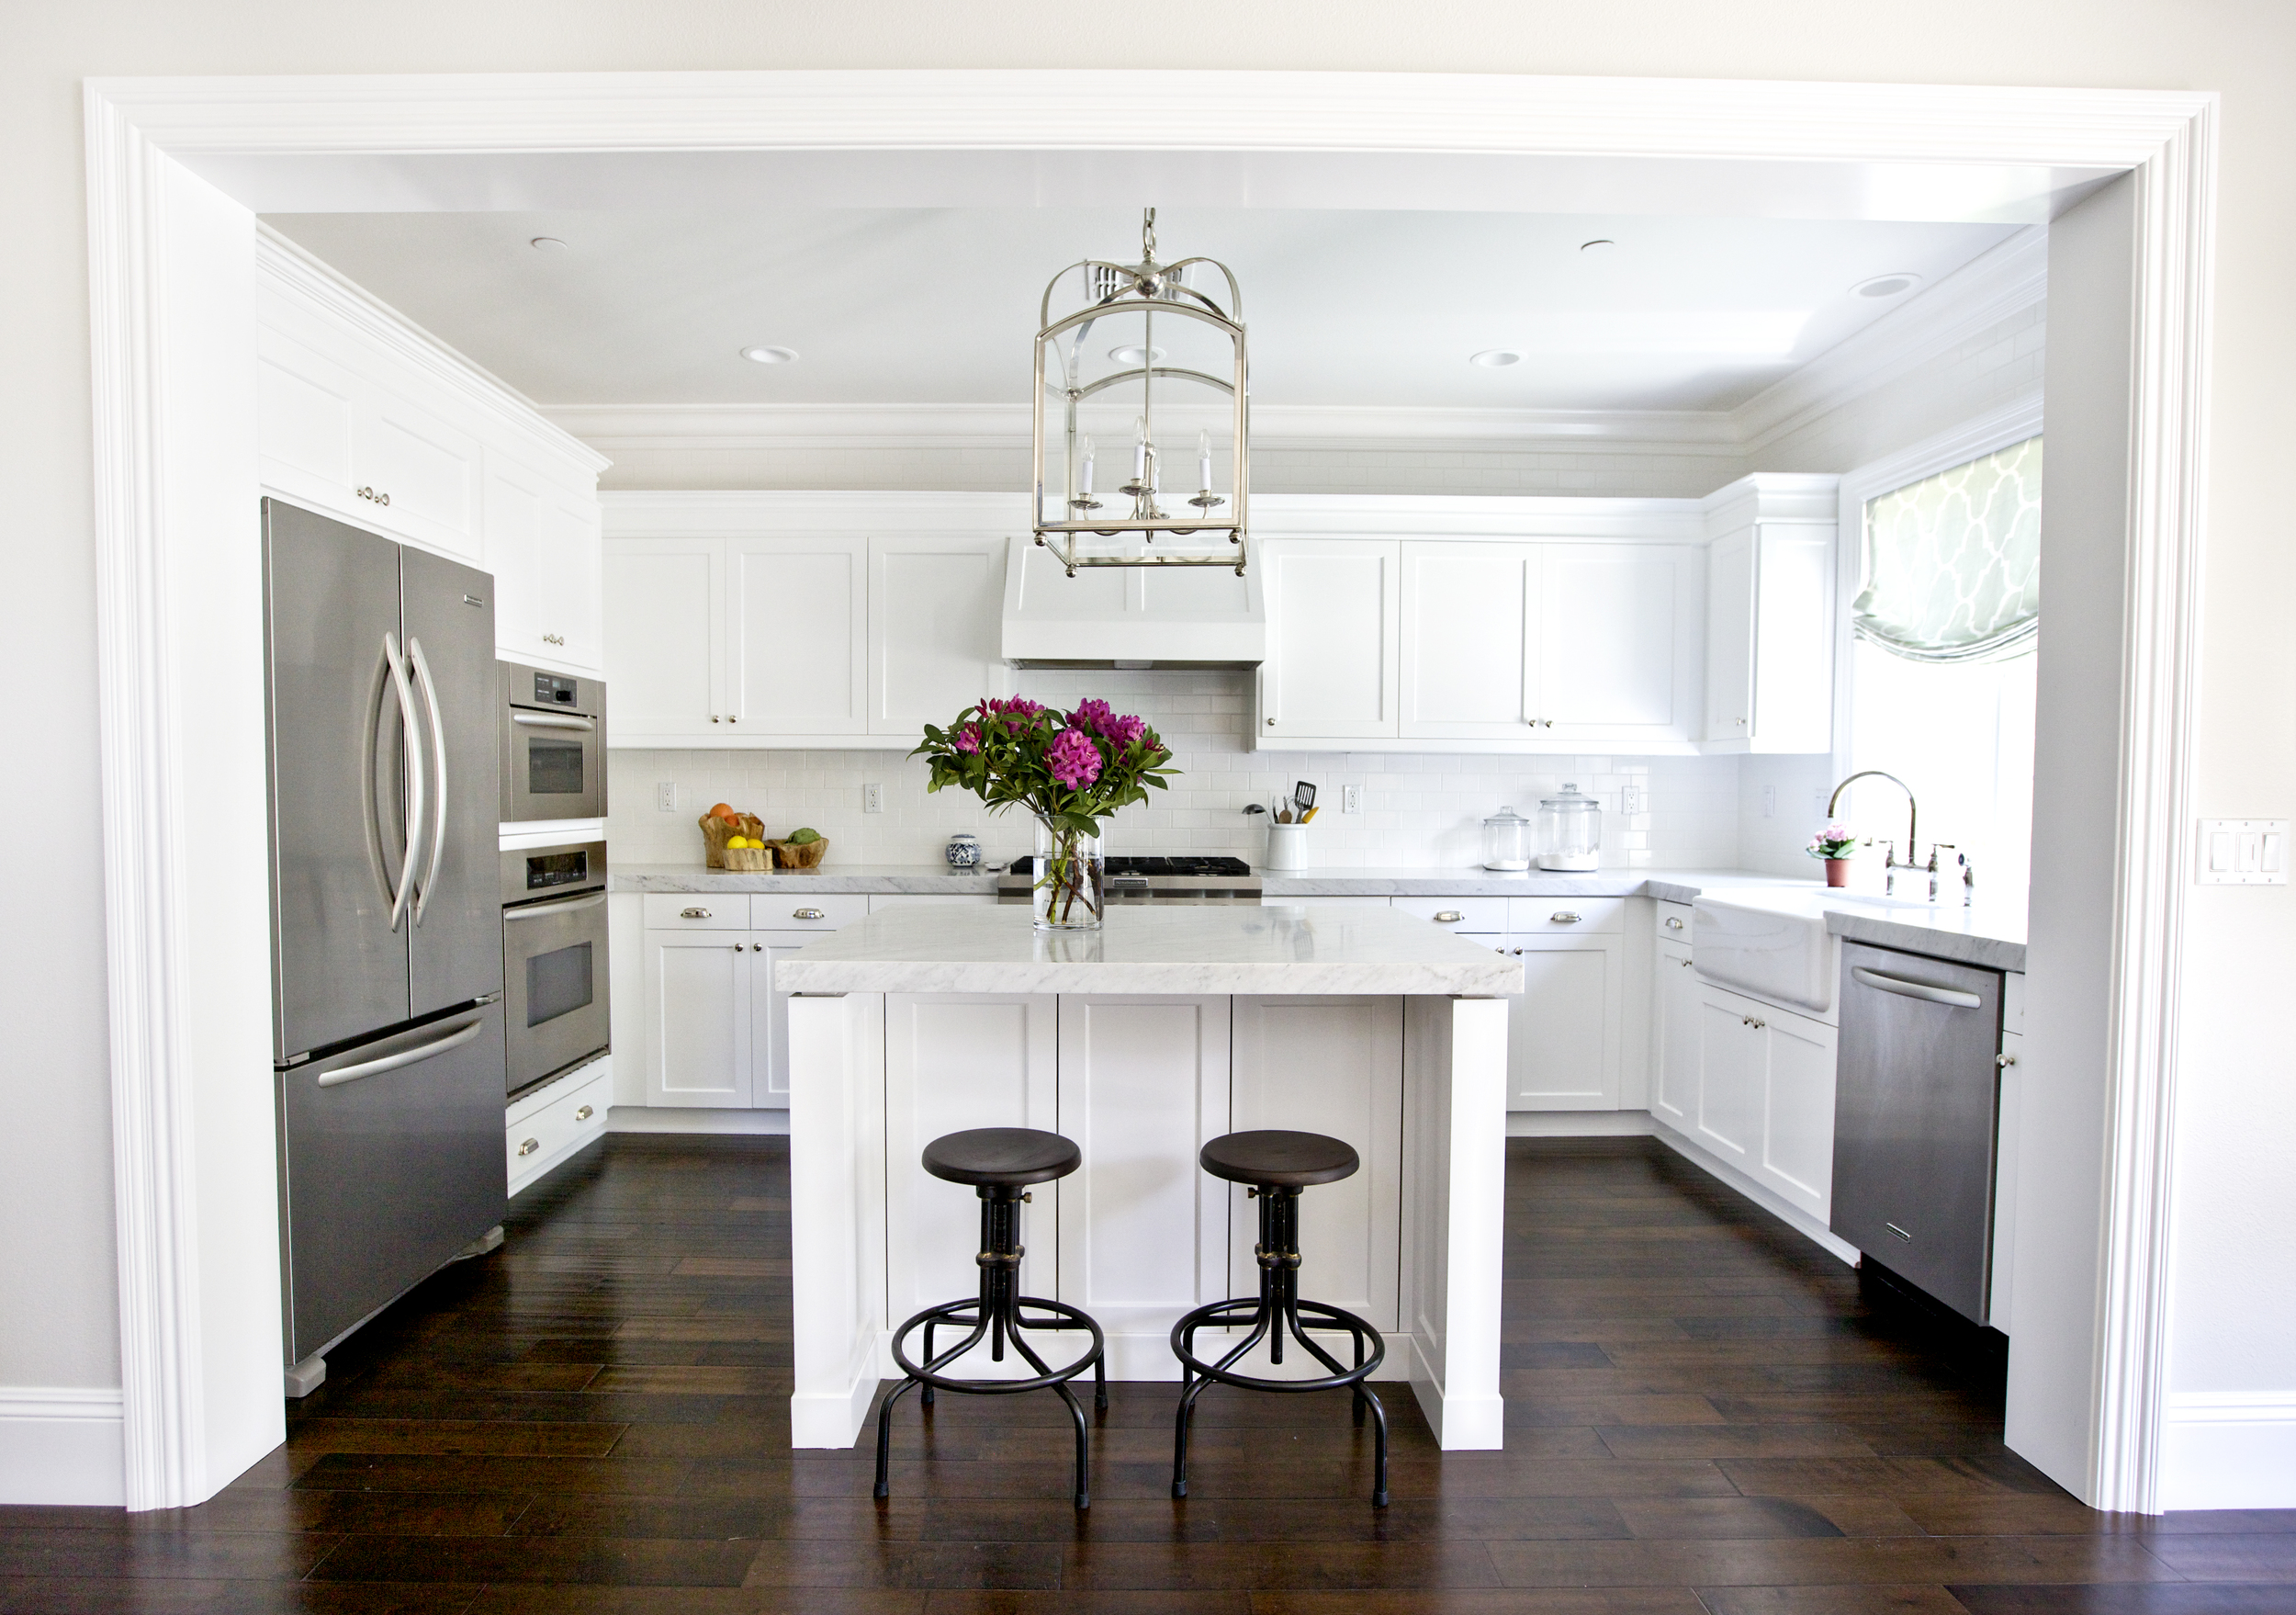 White kitchen with subway tile to ceiling || Studio McGee